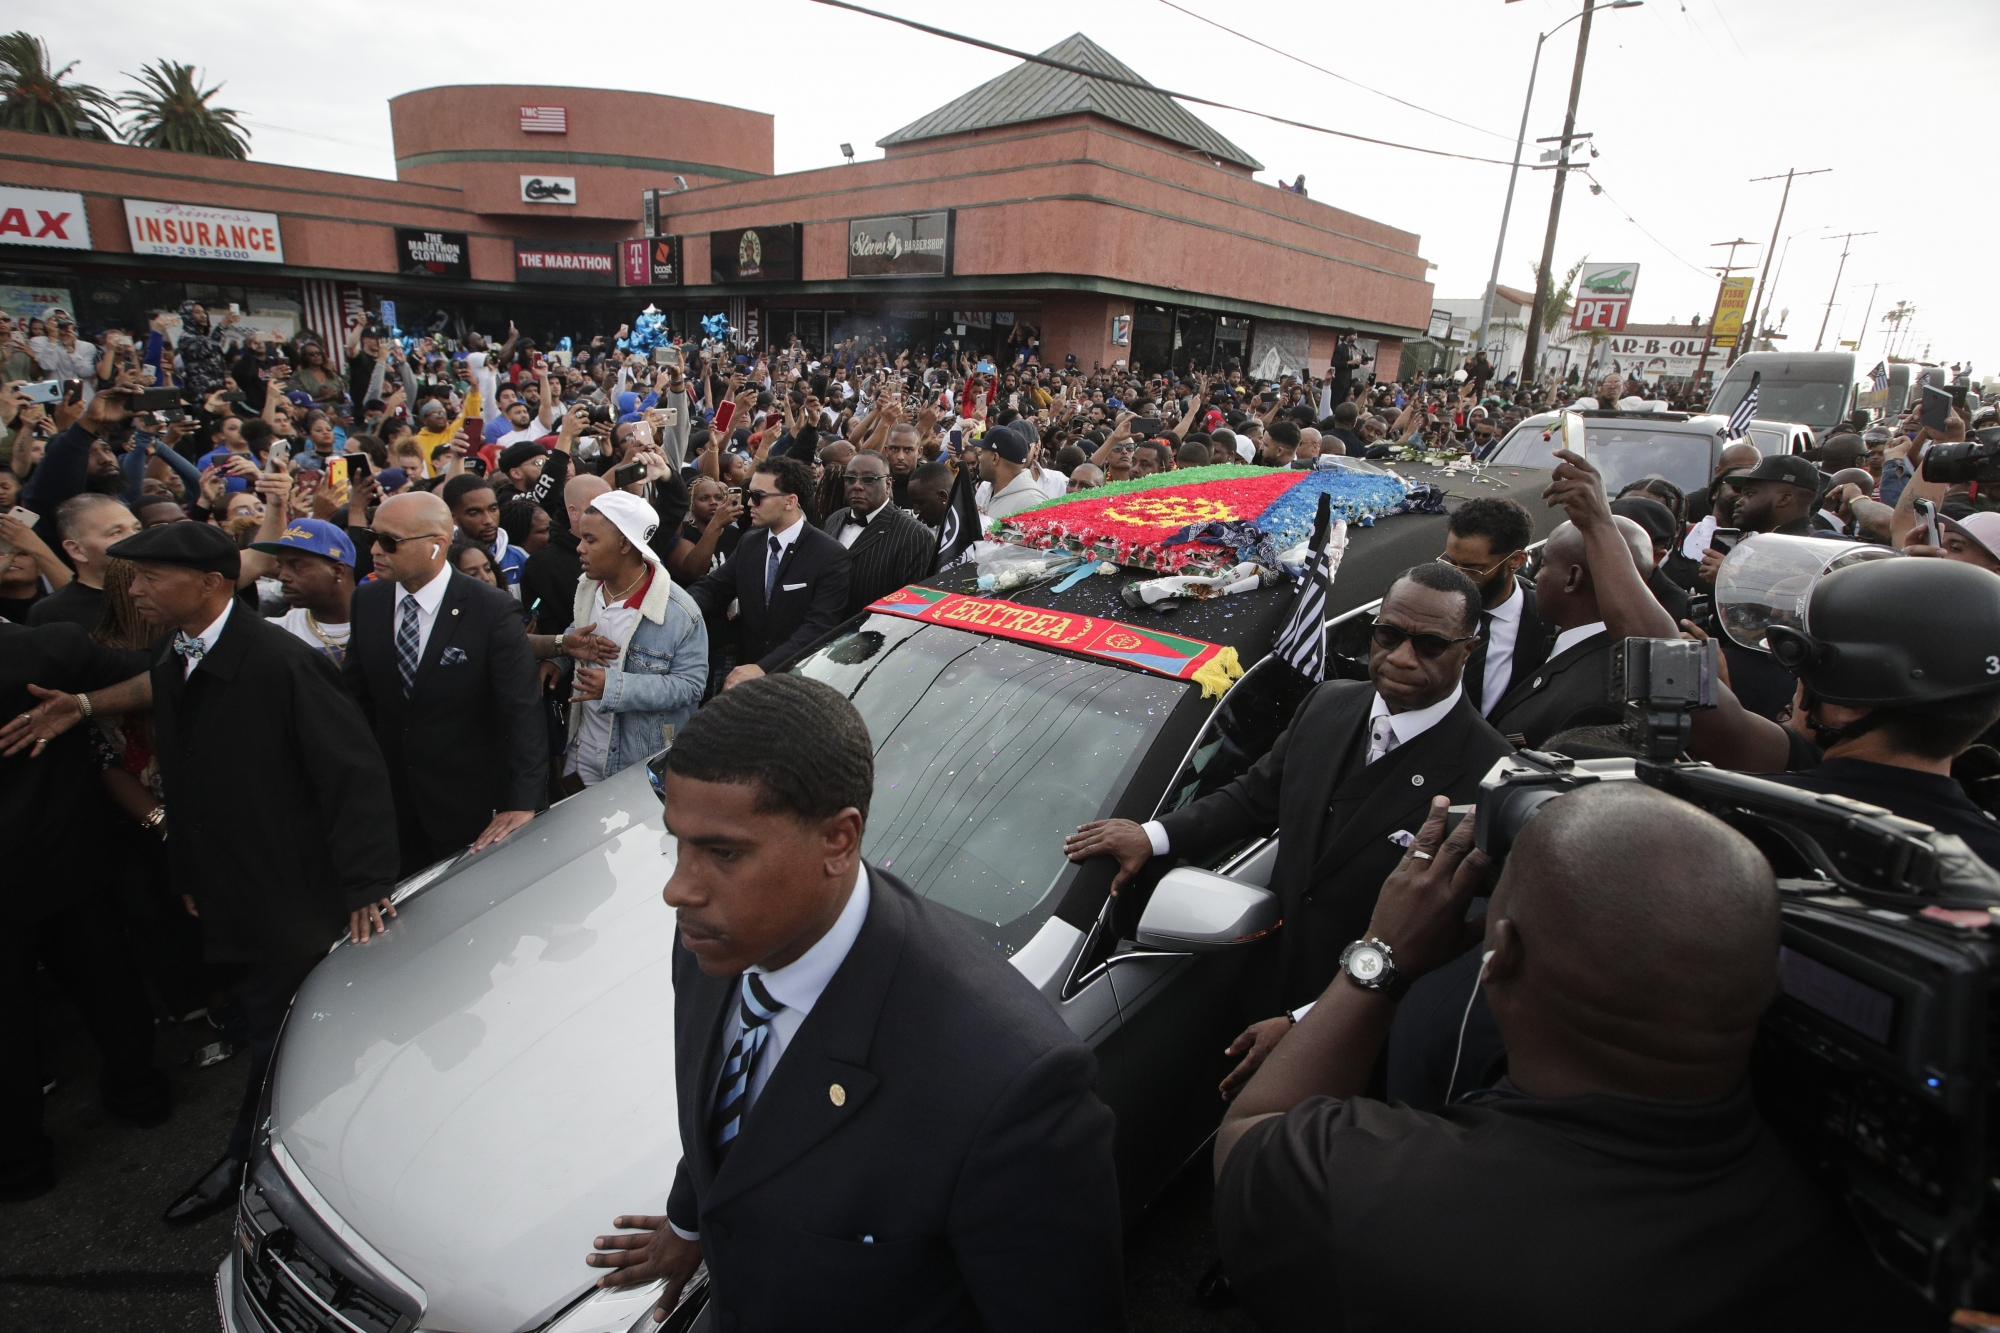 20 Nipsey Hussle Wallpapers Hd Free Download: Nipsey Hussle's Family Gathers For Private Funeral In LA